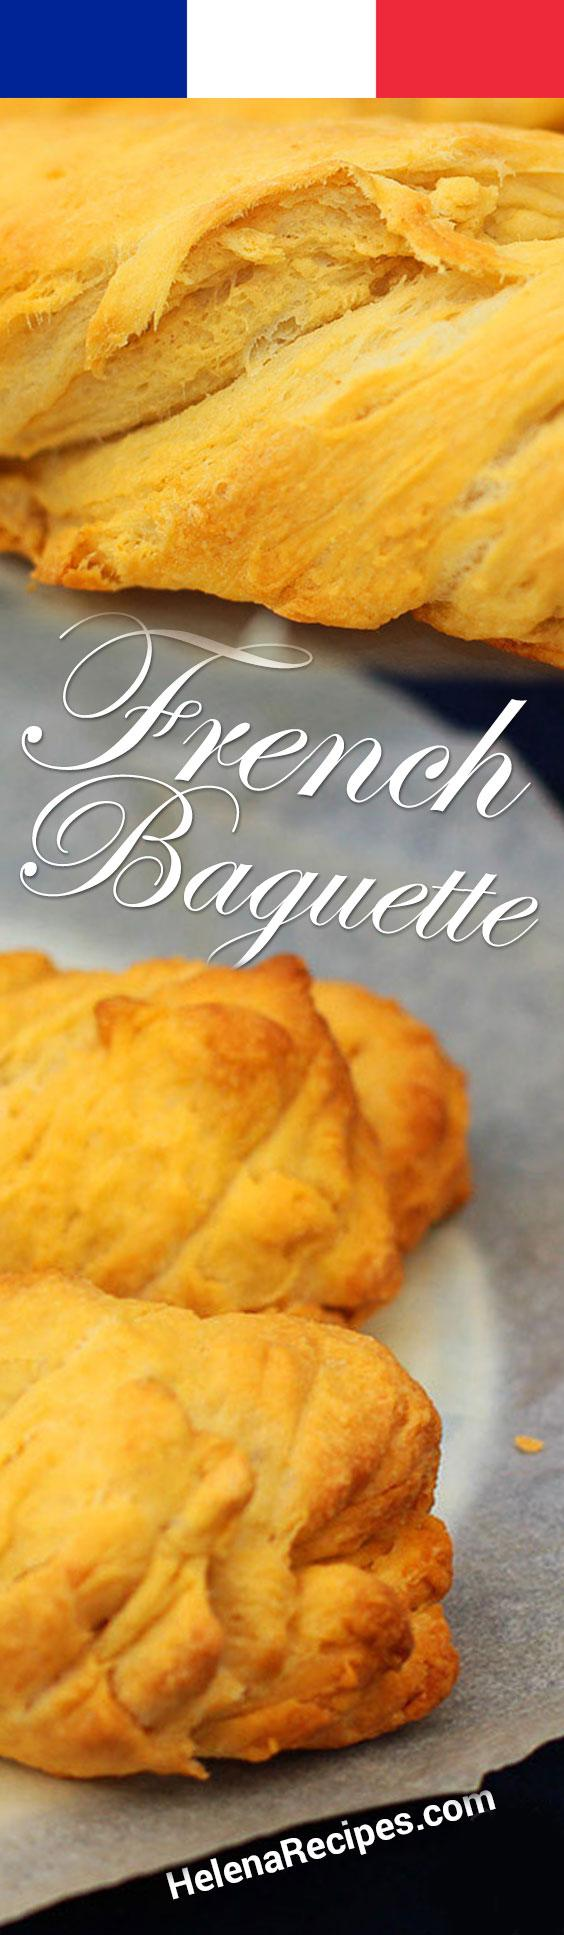 French Baguette Recipe Pinterest Image